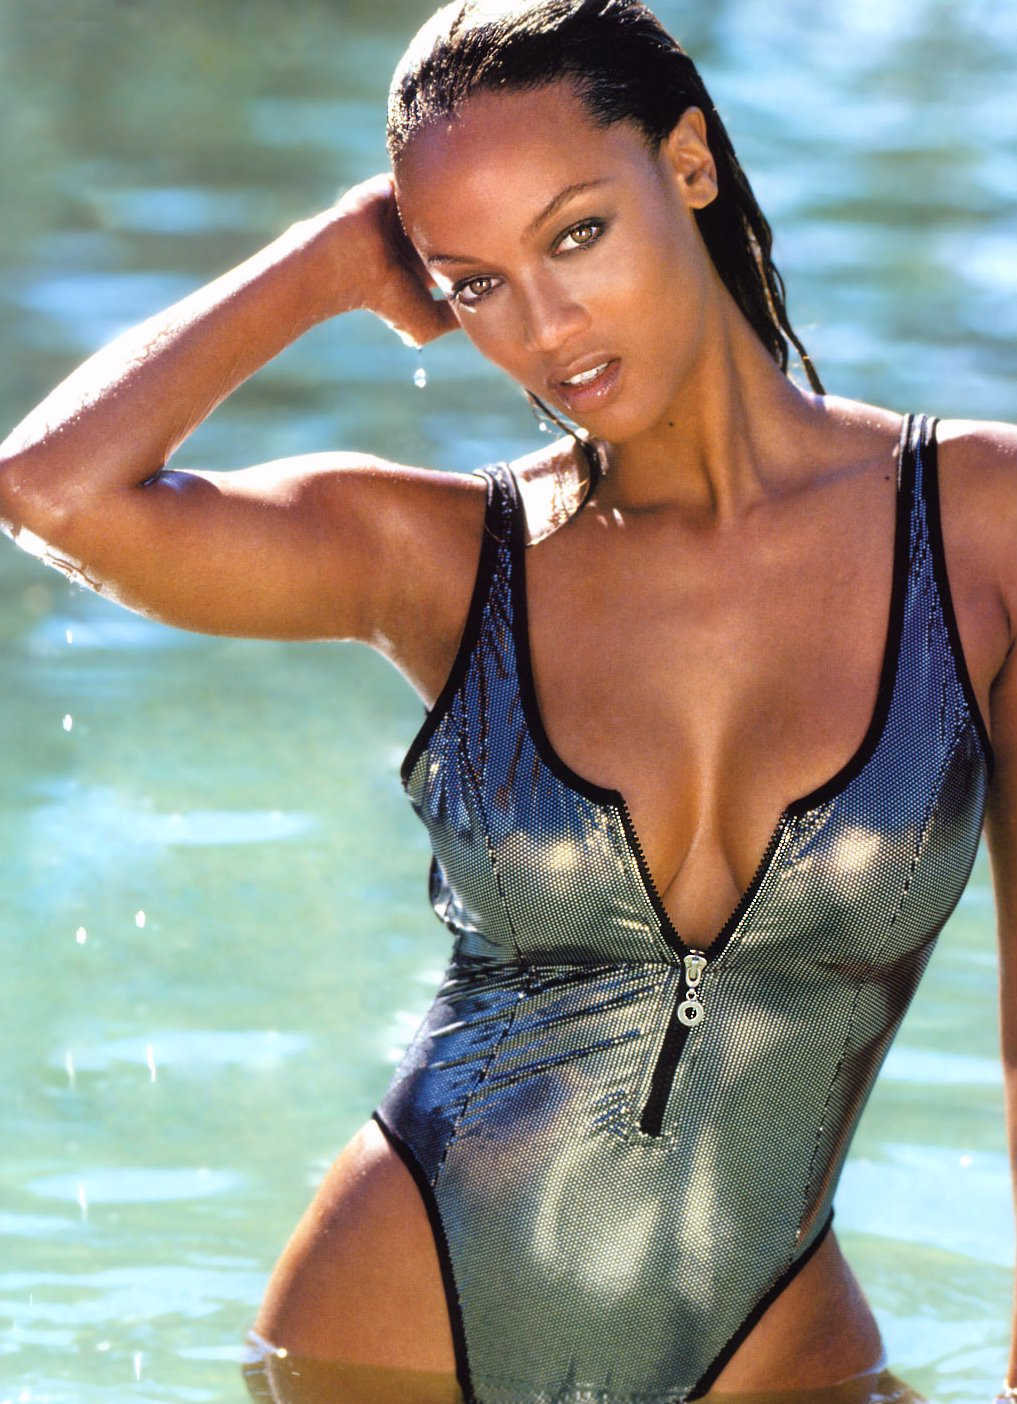 10 tyra banks (chris webber) - sports illustrated swimsuit models who dated athletes